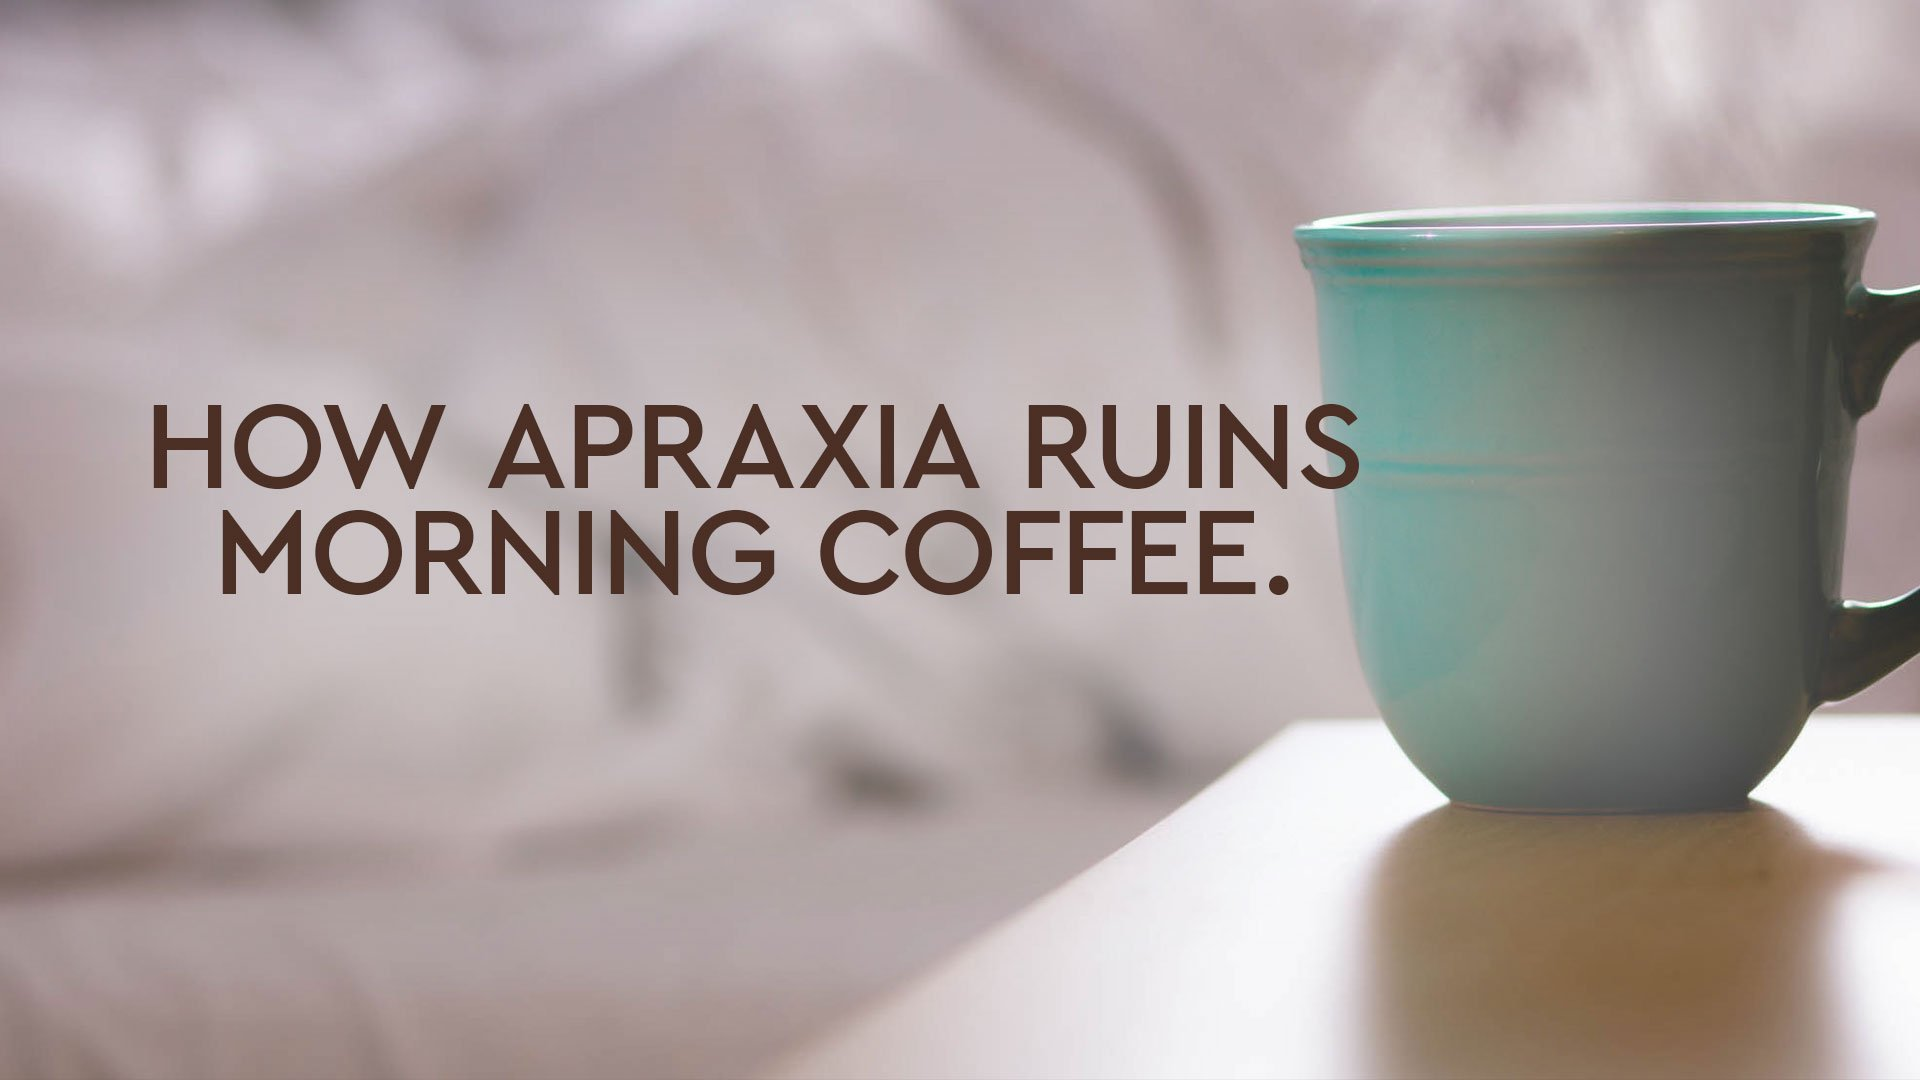 How Apraxa Ruins Morning Coffee